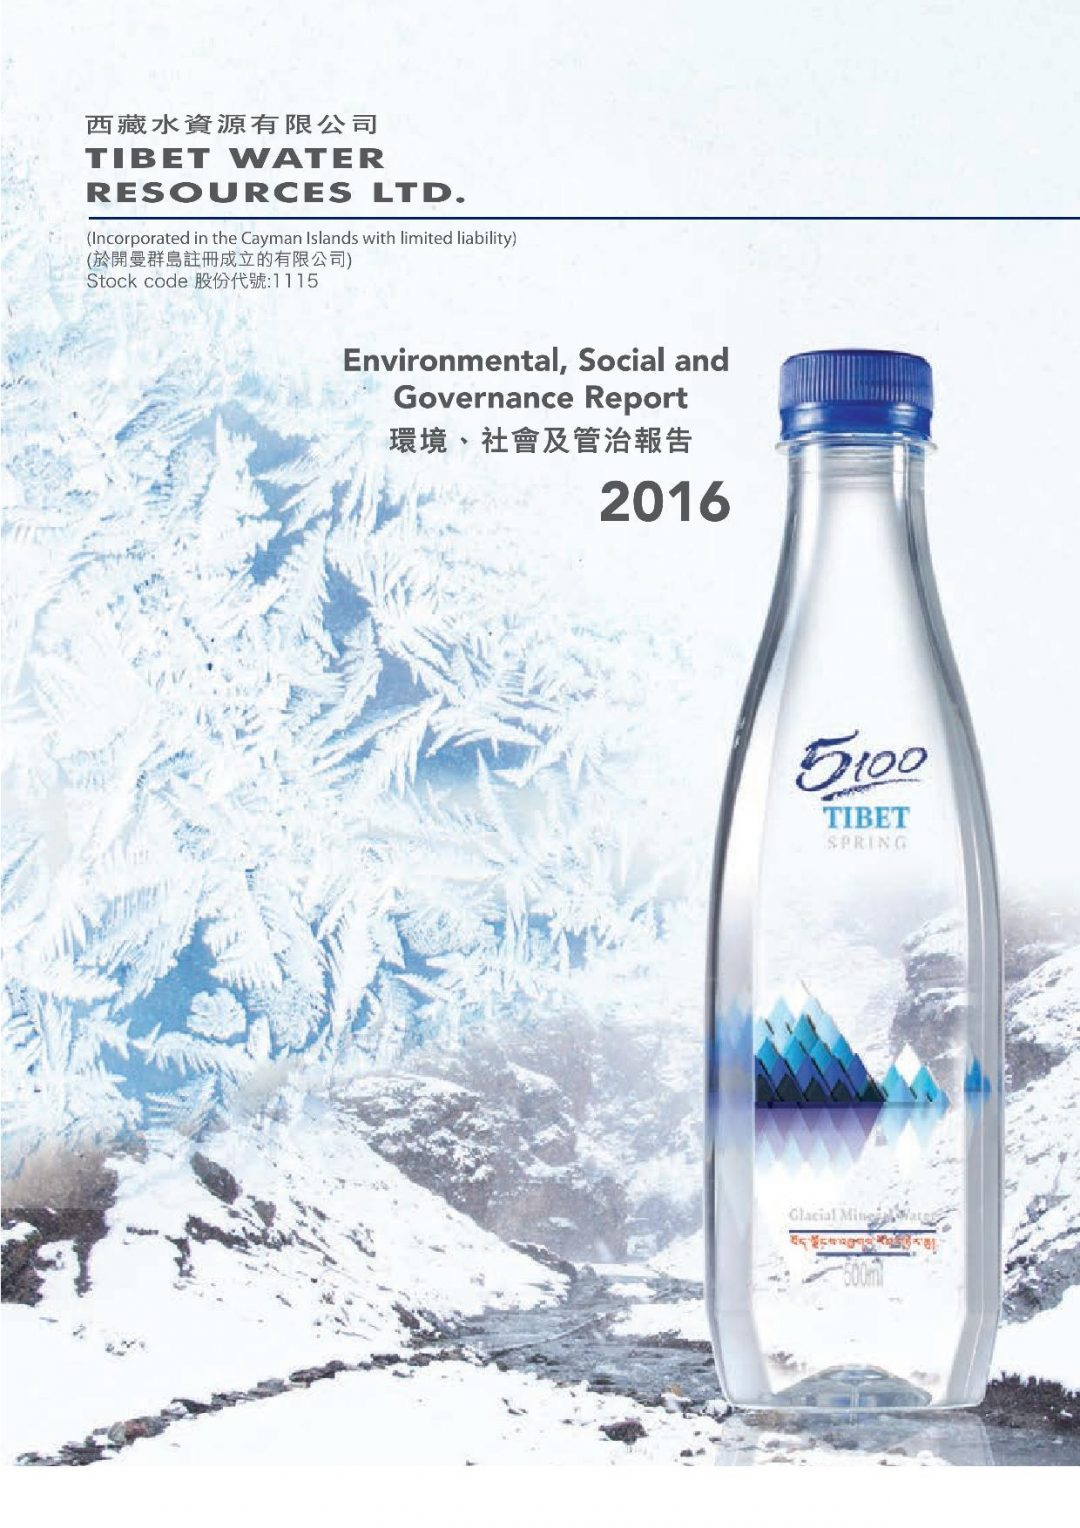 Tibet Water Resources Ltd